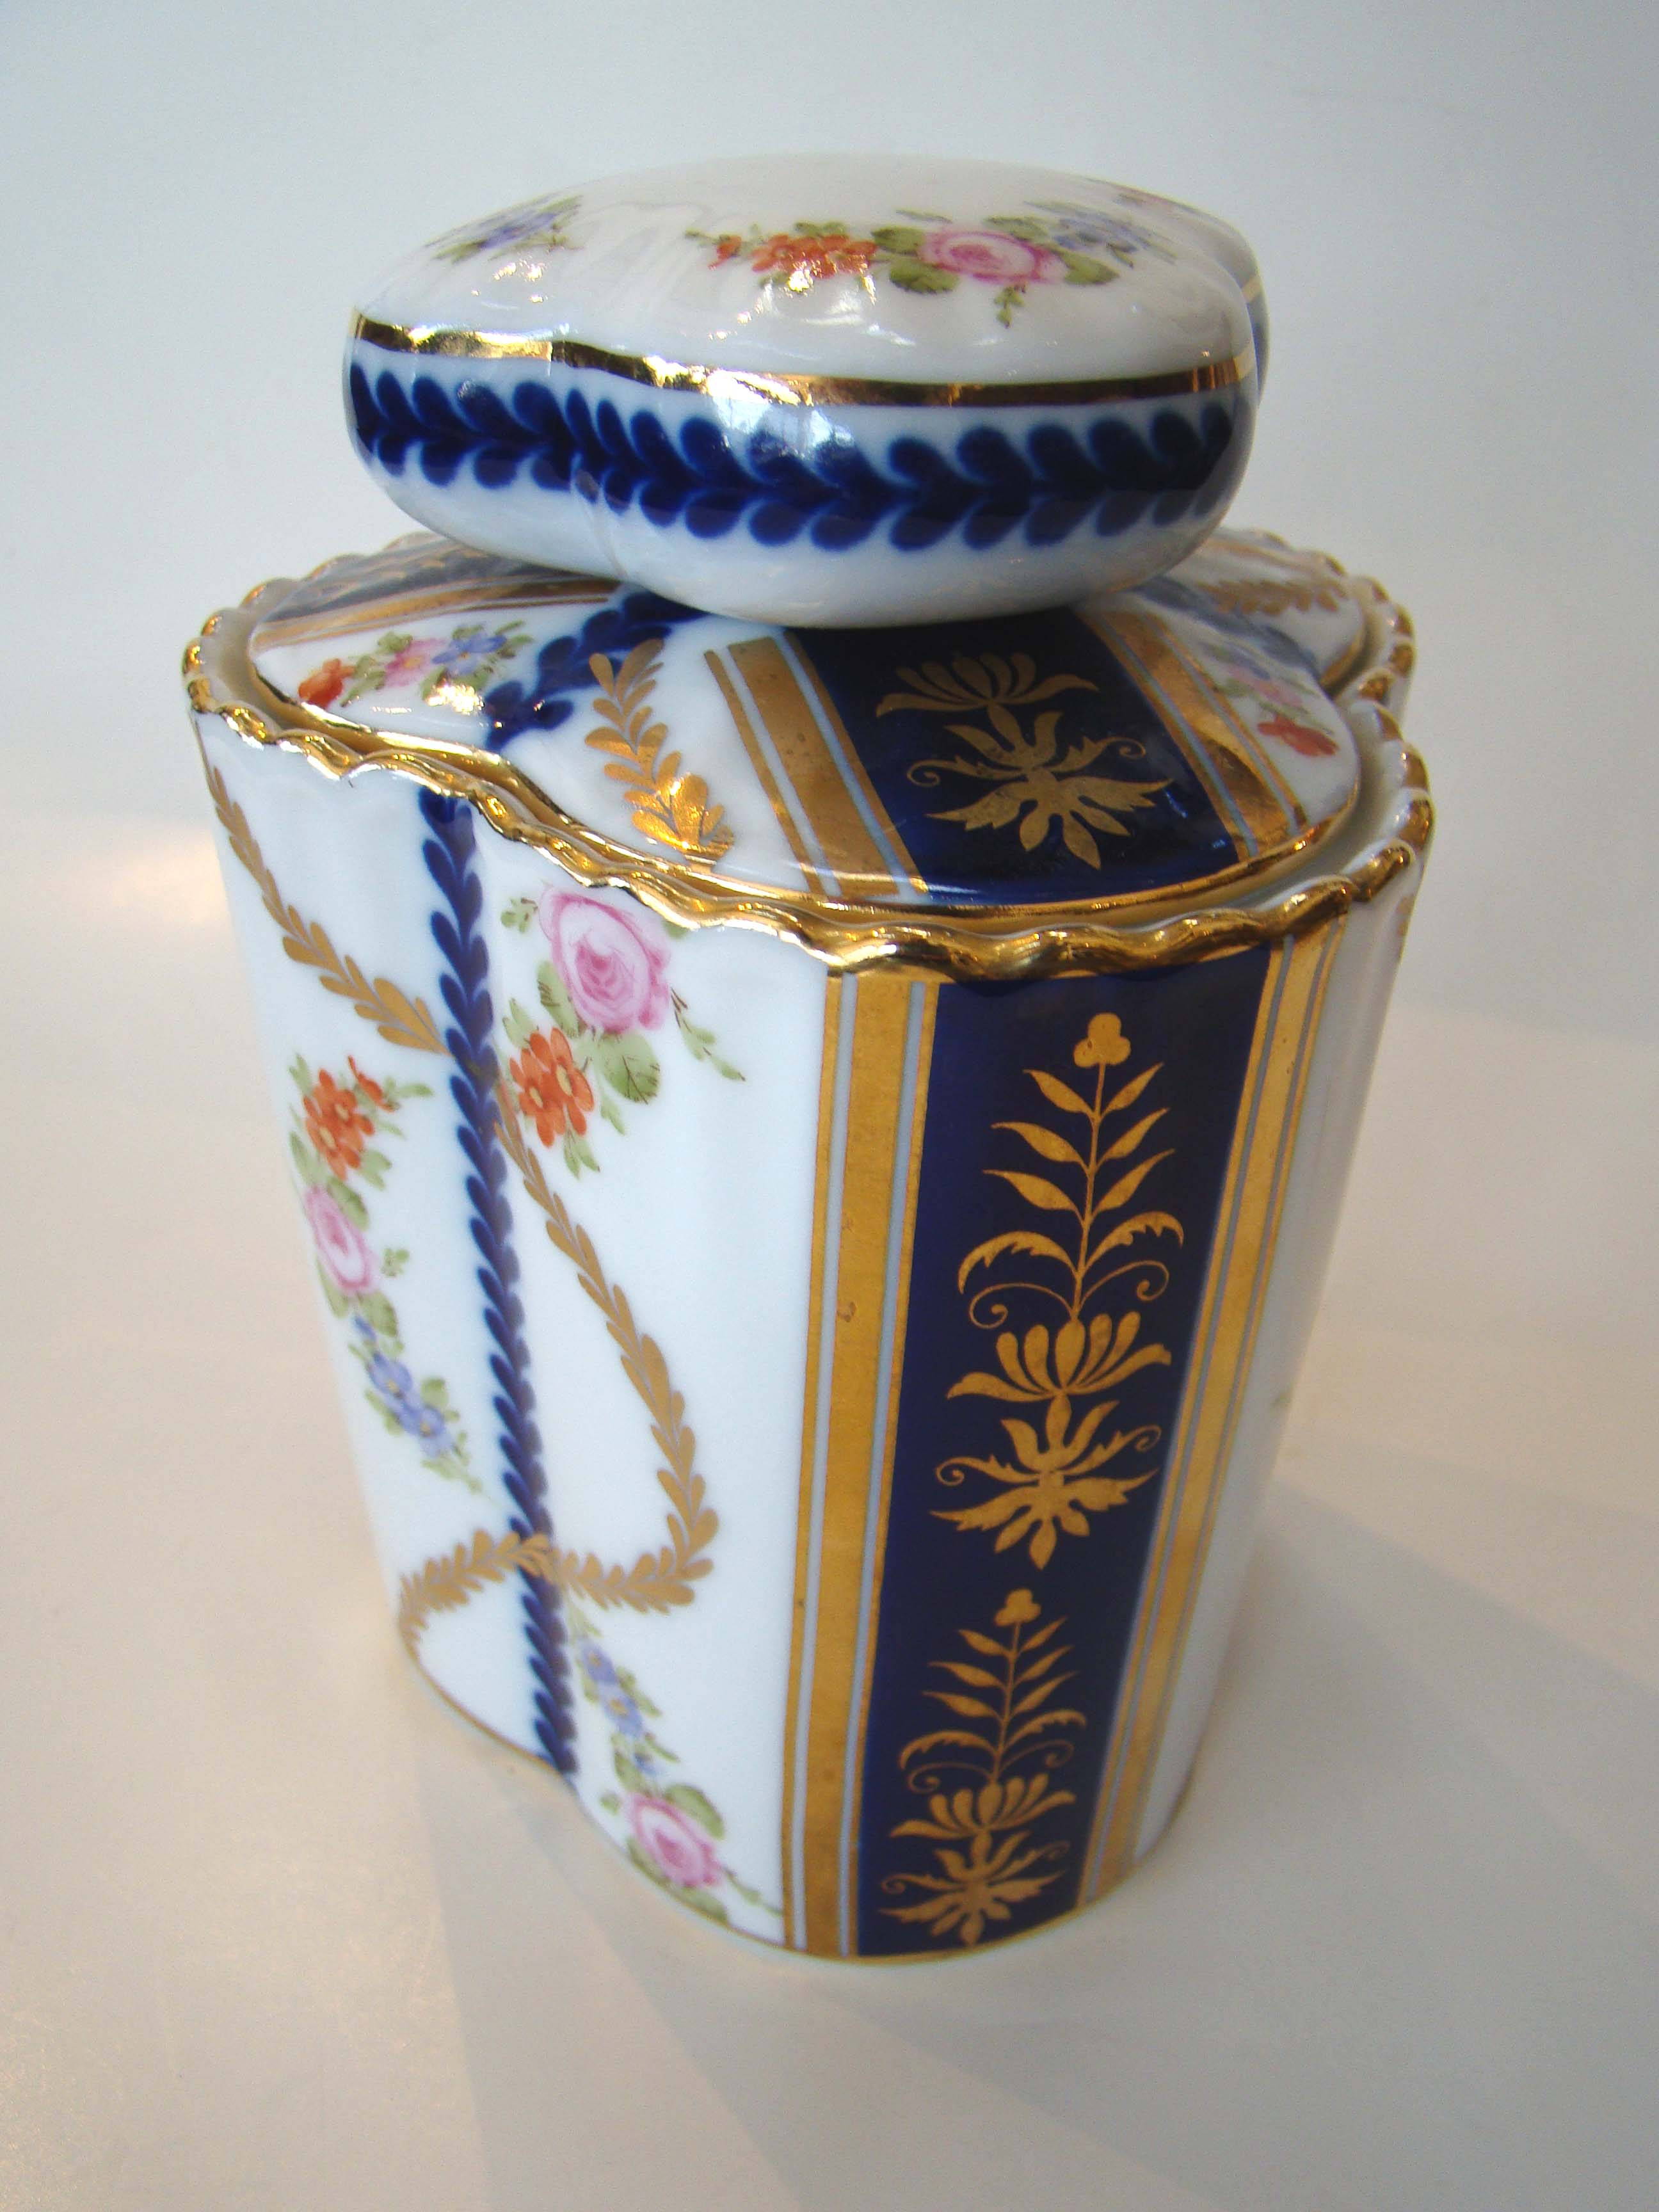 click to view detailed description of A beautiful English Staffordshire covered jar circa 1900-1920